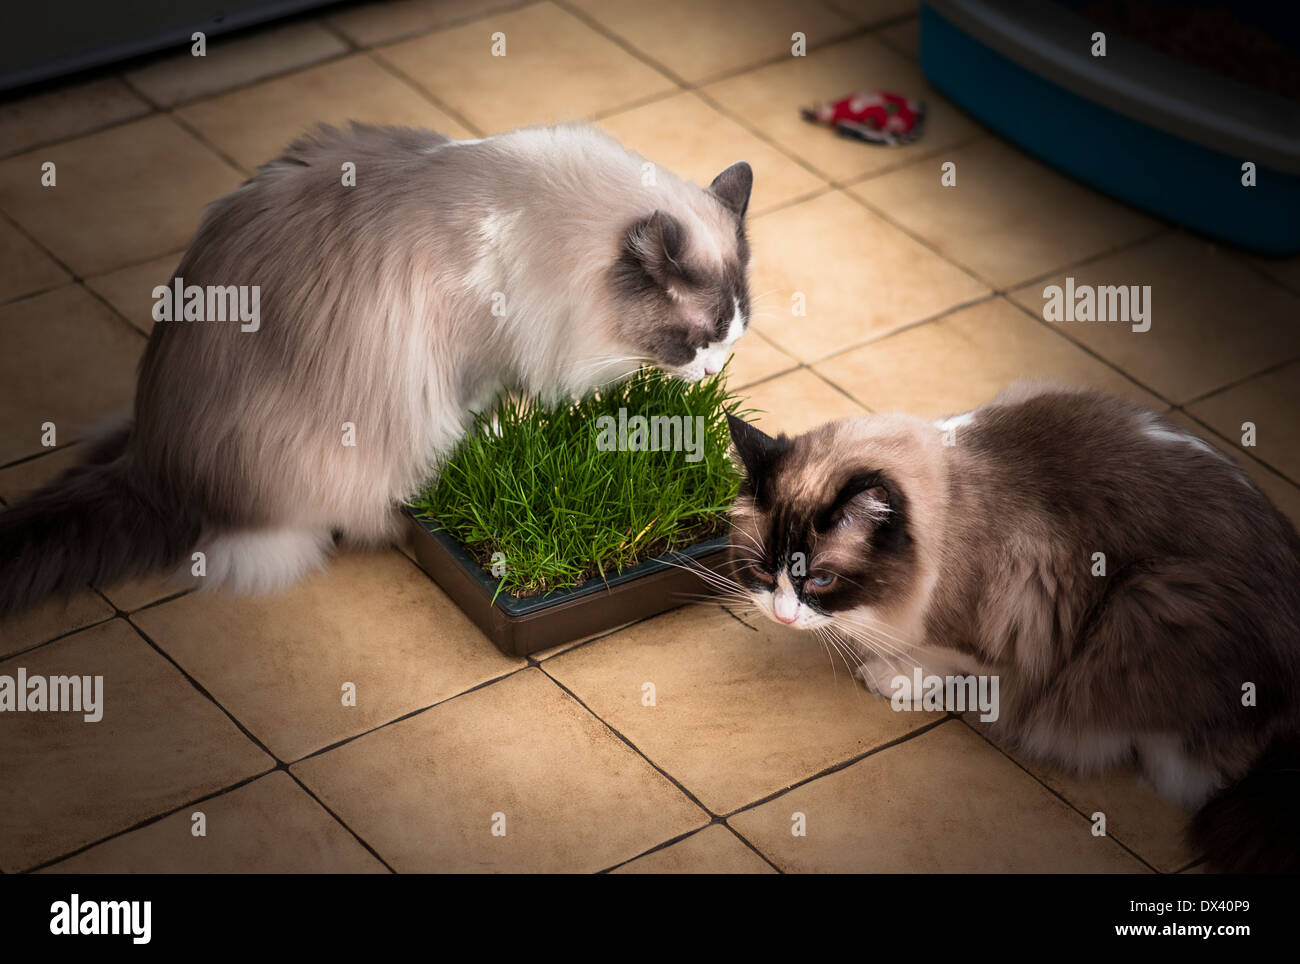 Two Ragdoll cats investigaing a new planter with growing fresh grass for them to nibble - Stock Image